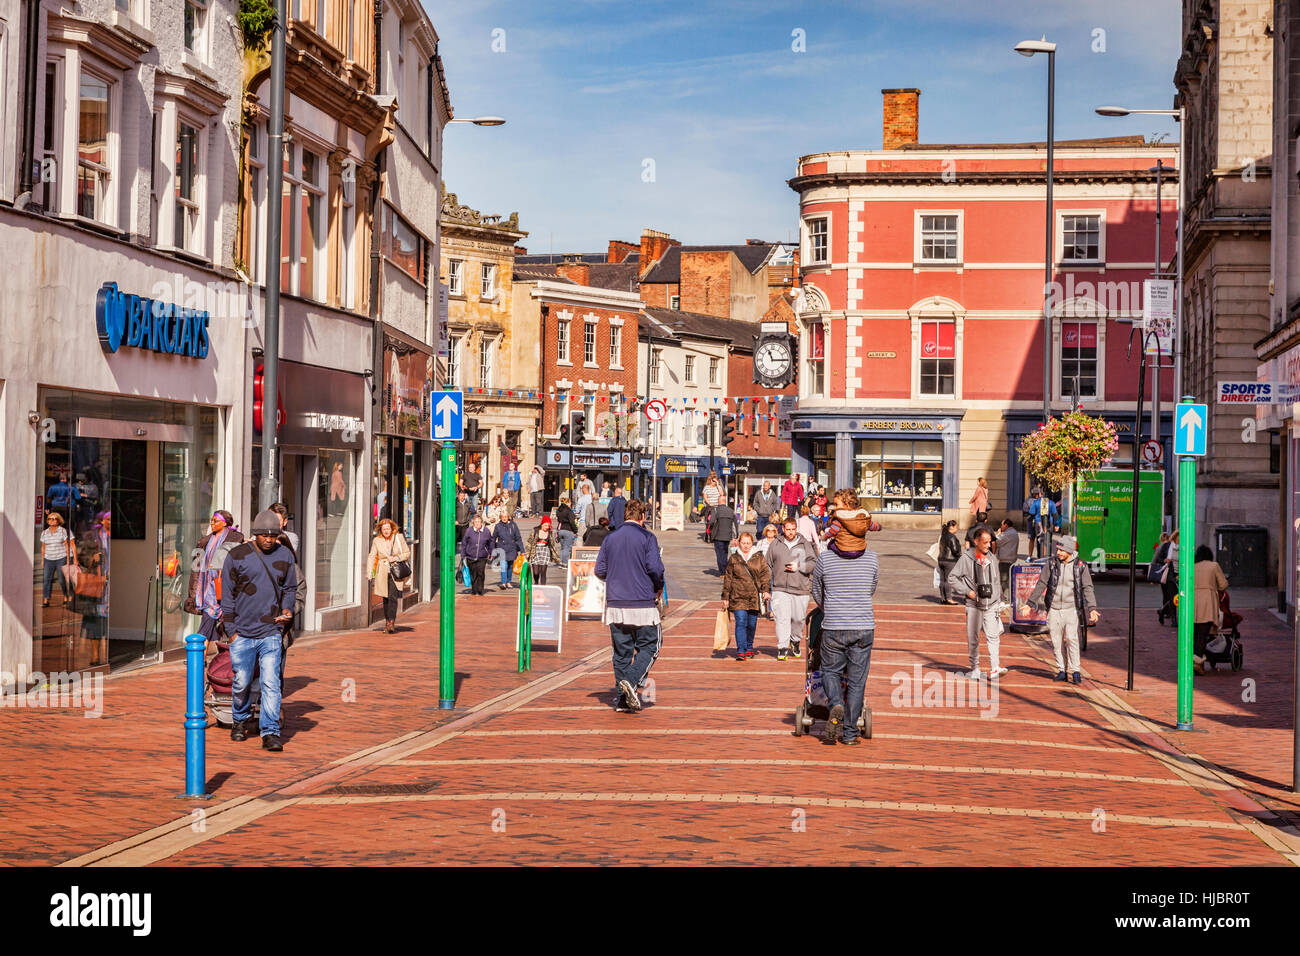 People shopping in the centre of Derby, Derbyshire, England, UK - Stock Image